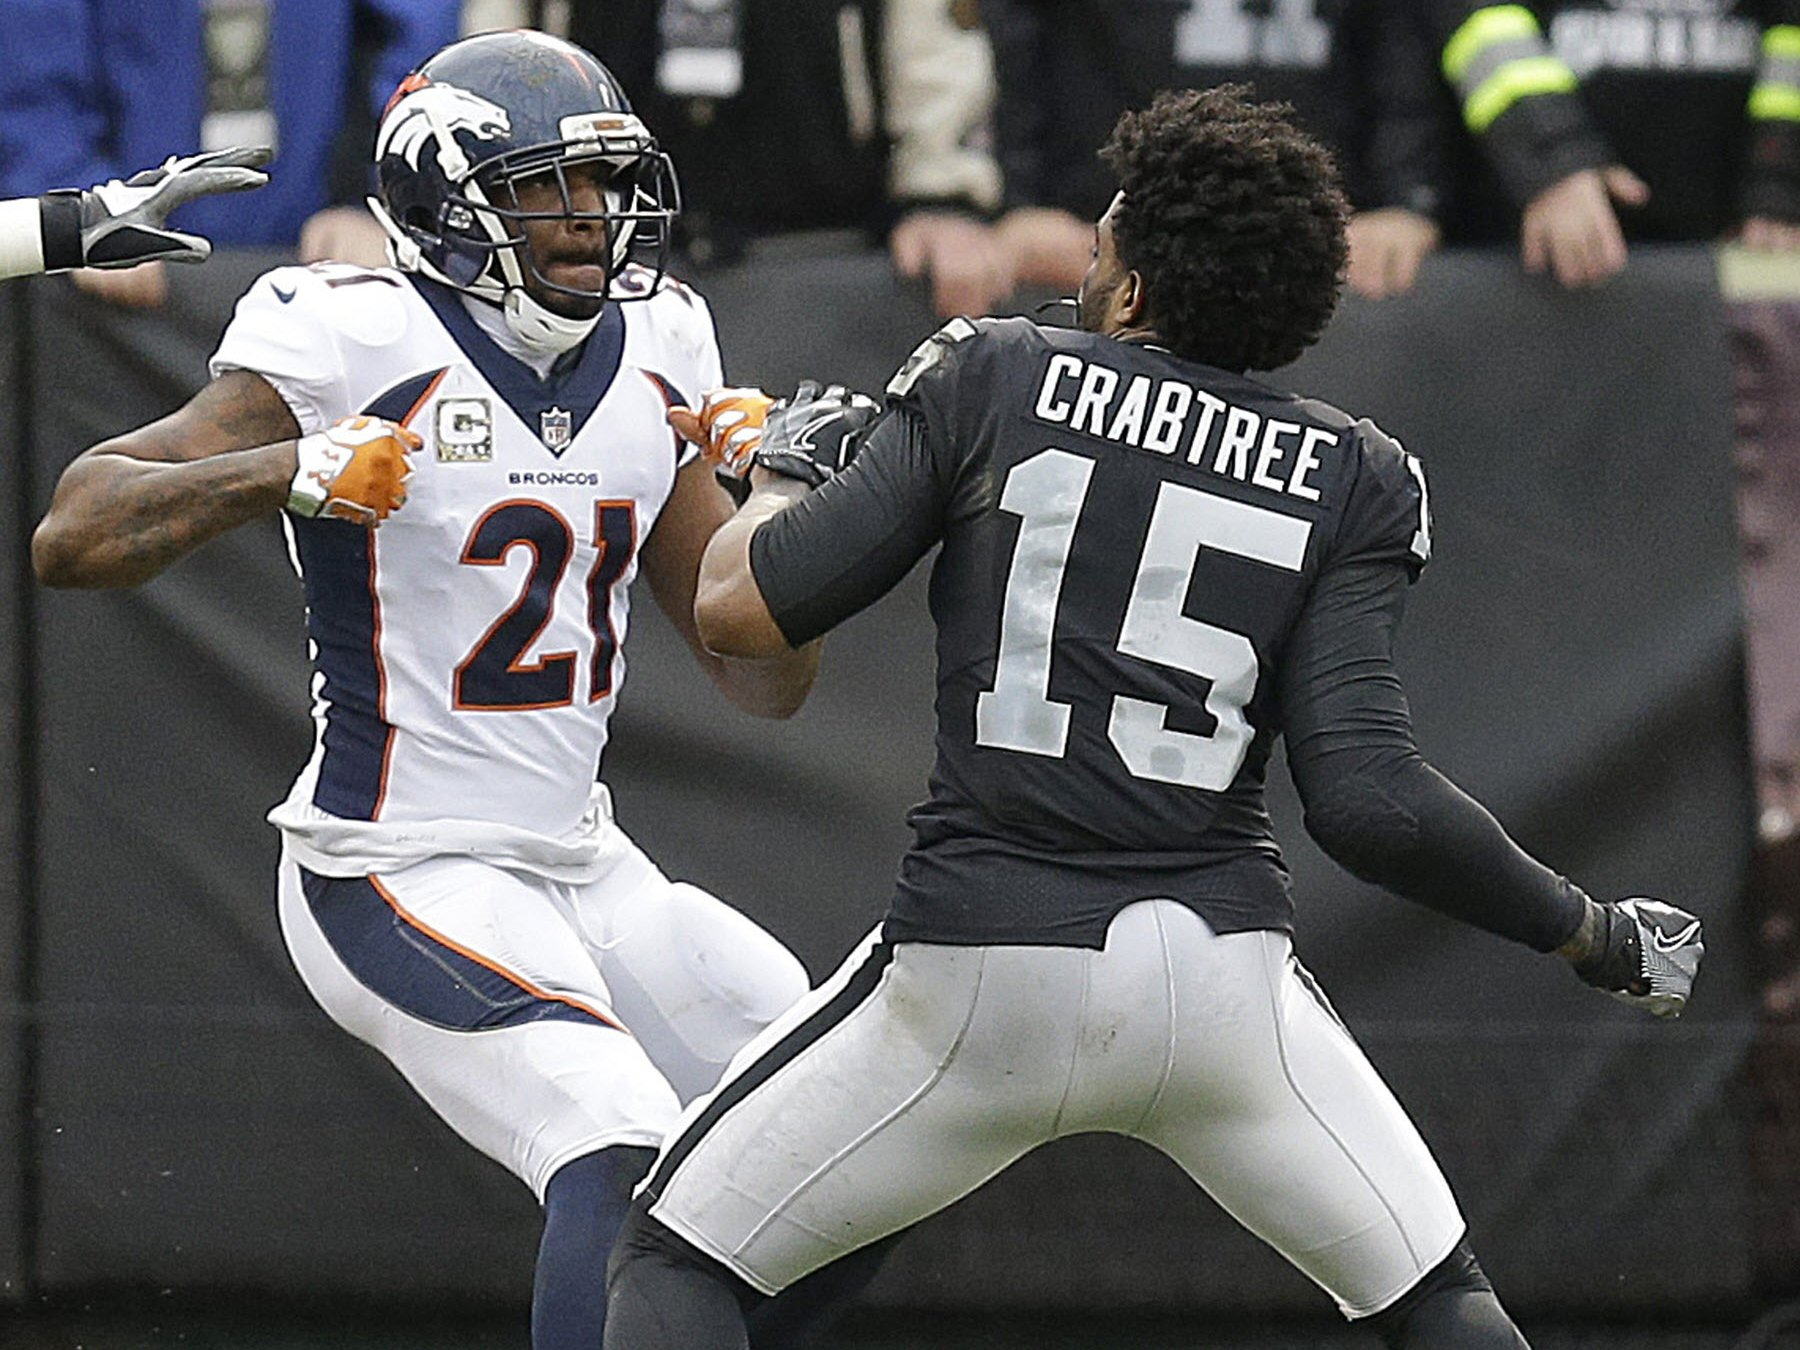 Broncos and Raiders Players Fight